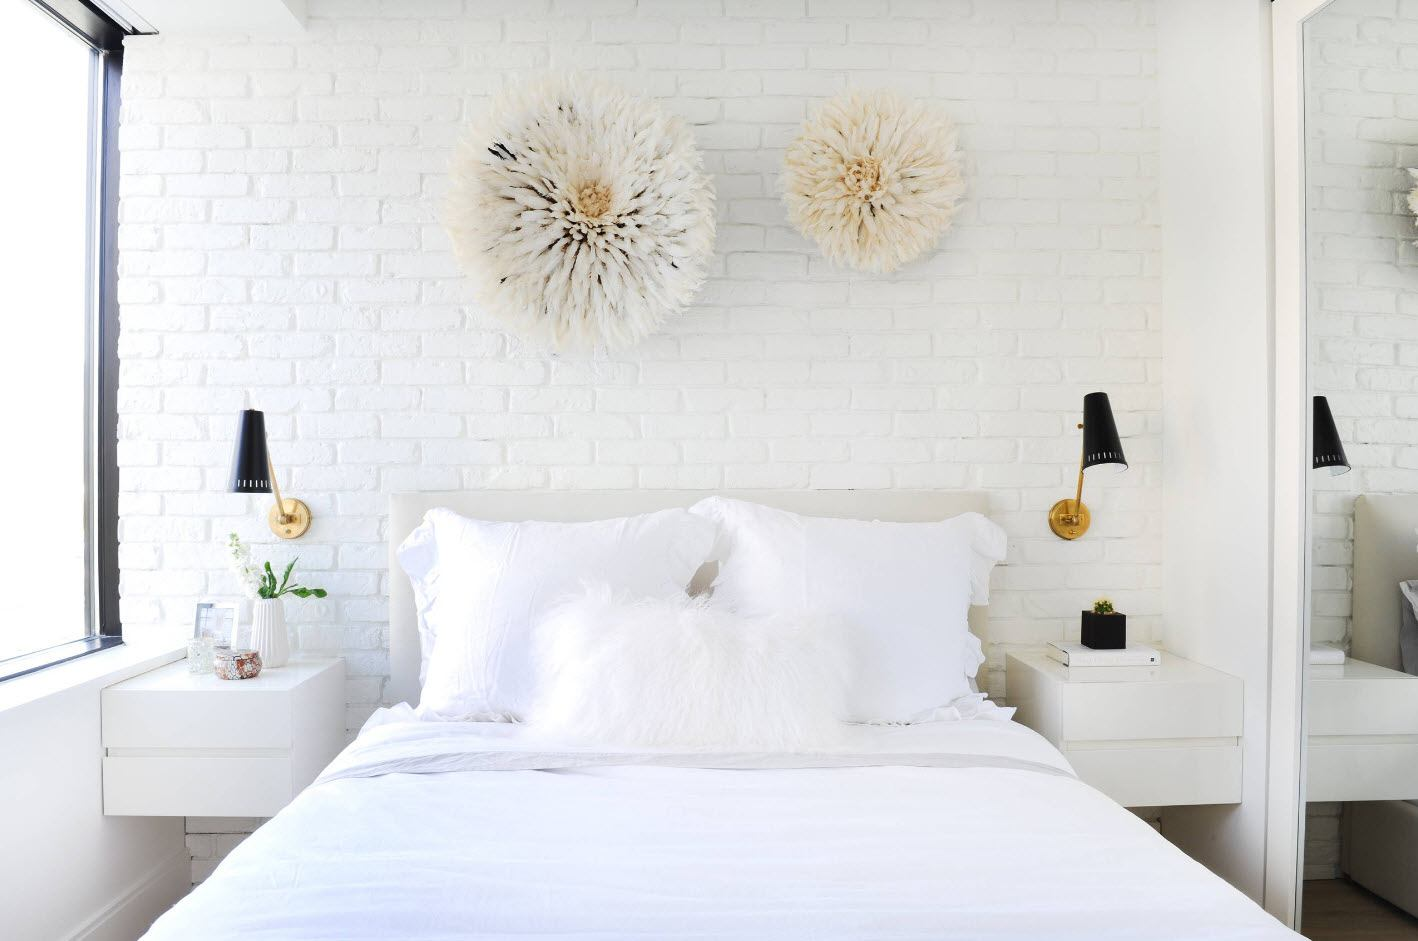 Totally white interior of the bedroom with plates decorating the headboard